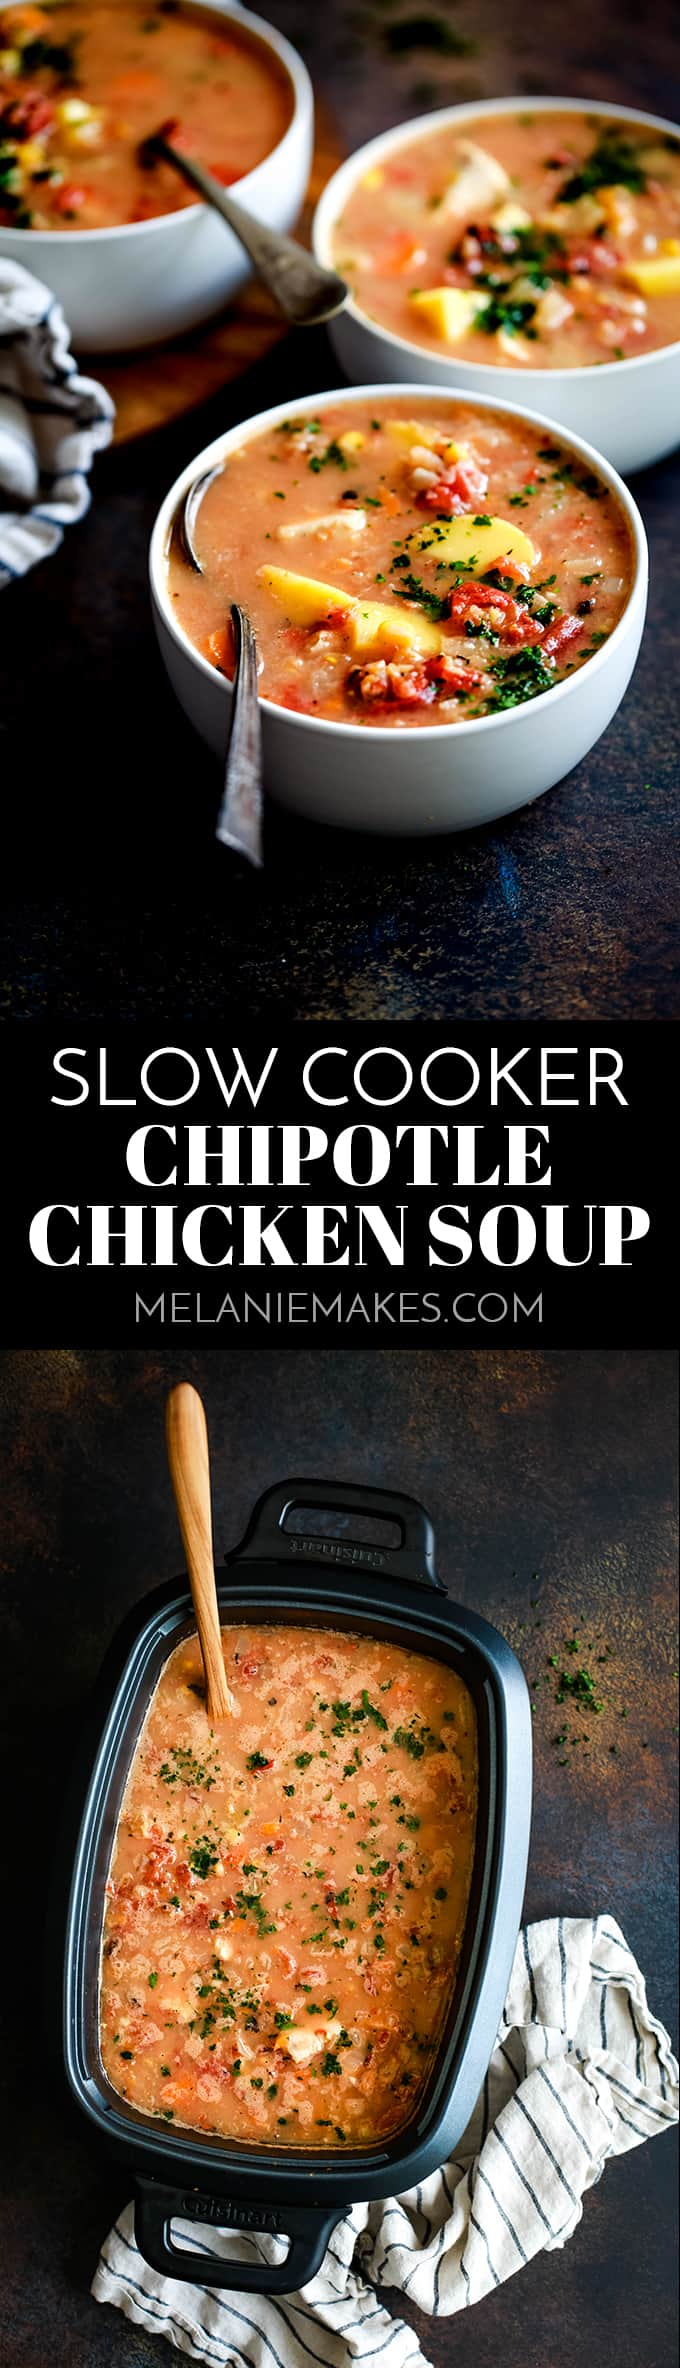 This smokey Slow Cooker Chipotle Chicken Soup comes together in just minutes, making it one of the easiest - and most delicious! - meals you can prepare any night of the week. #slowcooker #crockpot #chicken #soup #easyrecipe #chipotle.